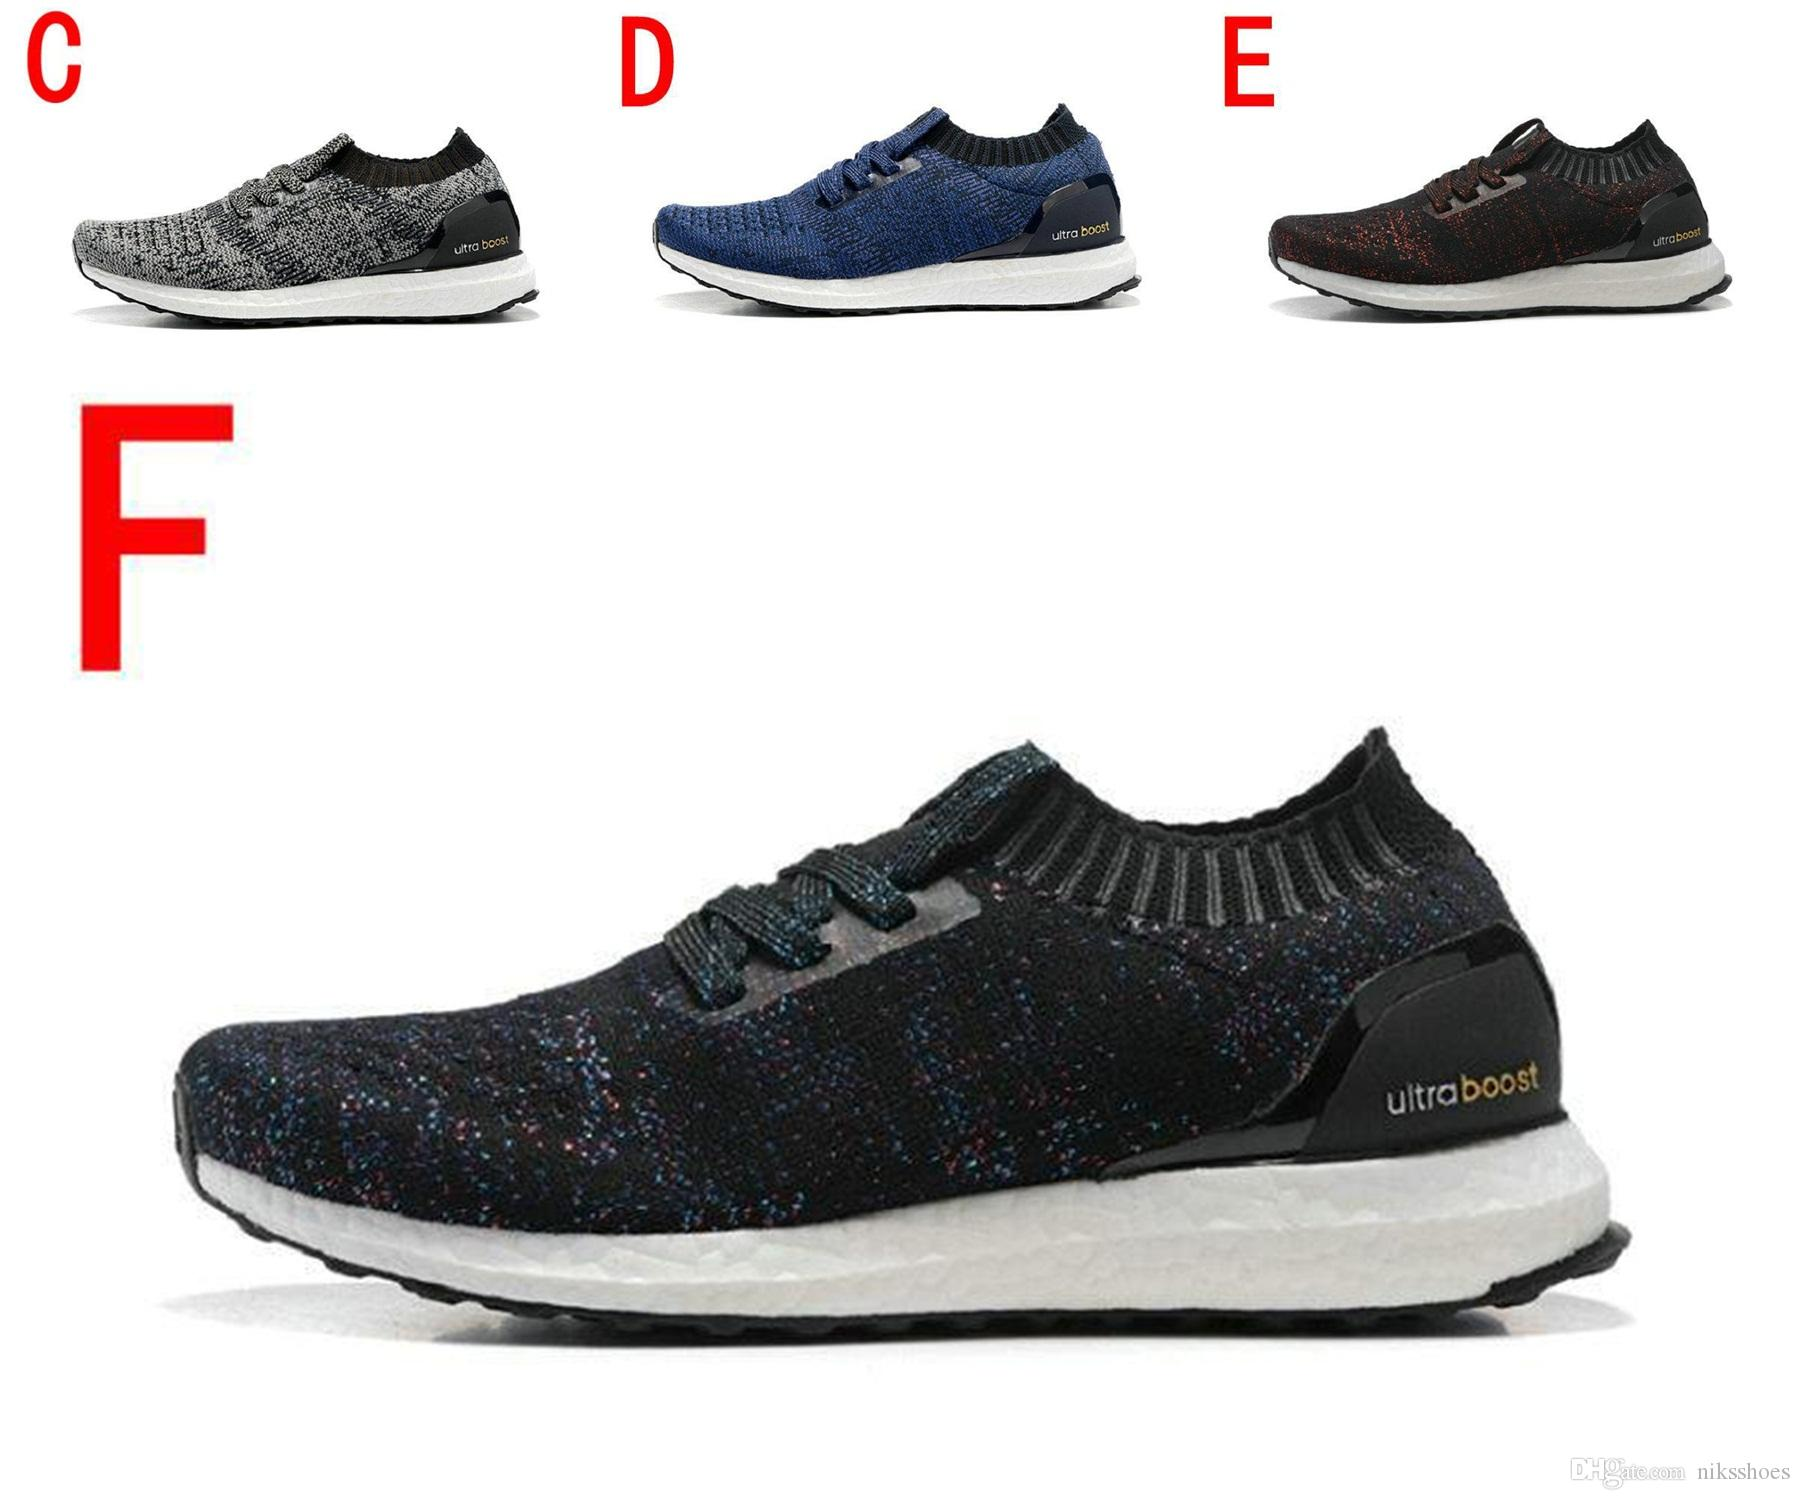 2018 New ACE Ultra Boost sock without shoelace running shoes black ash YB1688 Sport Sneaker cheap best sale apZO27Yt